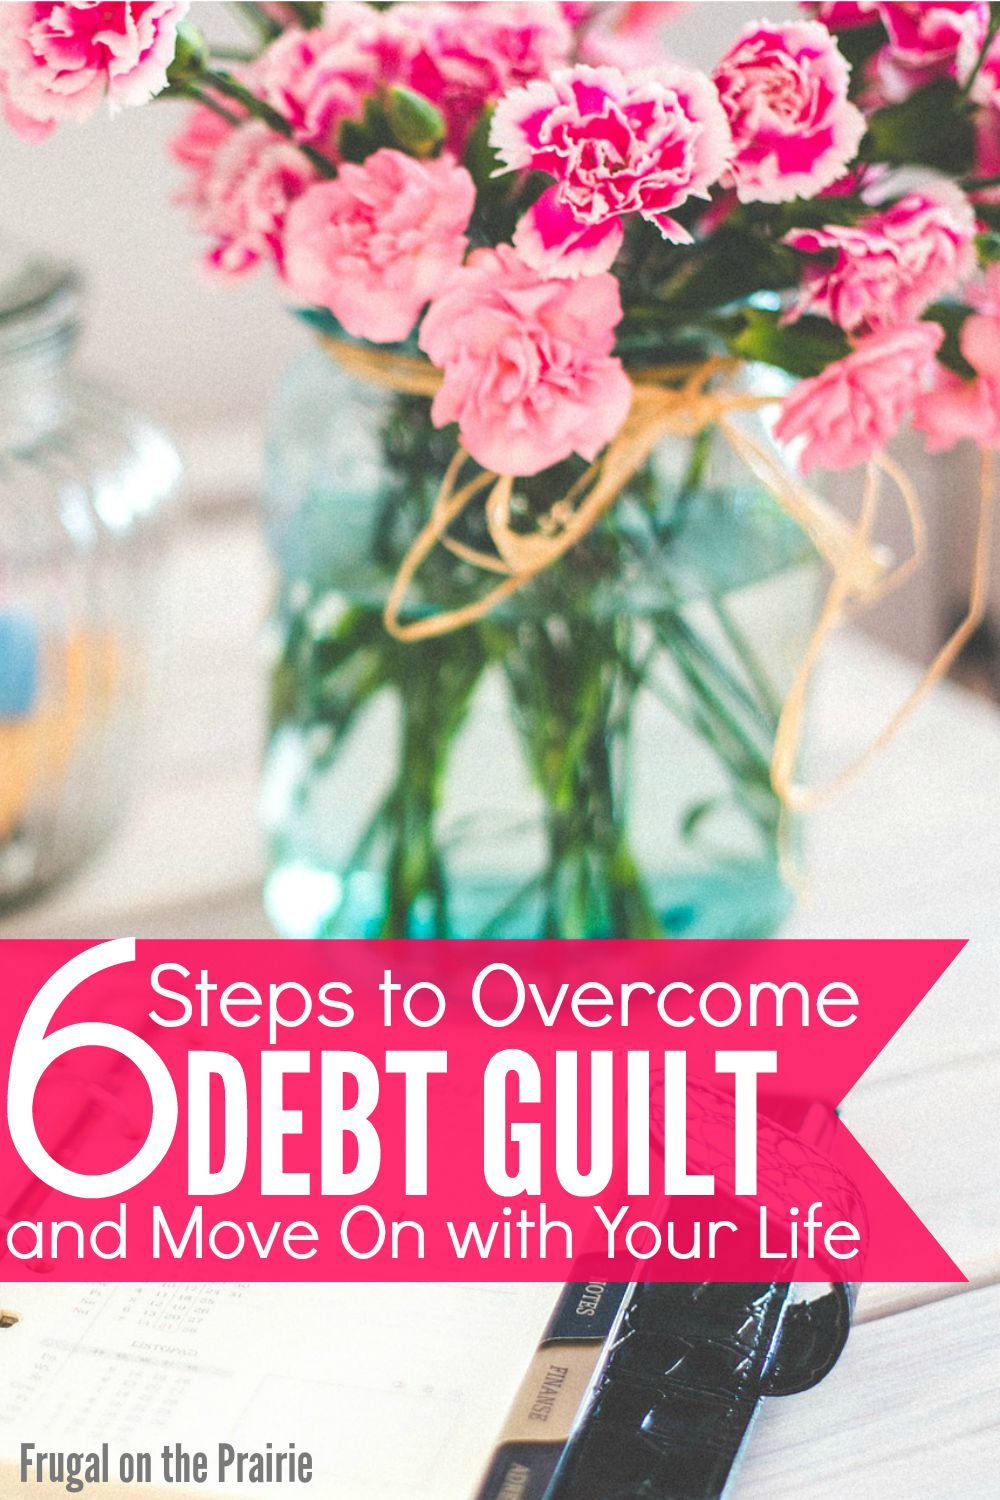 How do you overcome debt guilt and move on with your life? Follow these 6 easy steps to accept the problem and take control of your finances.